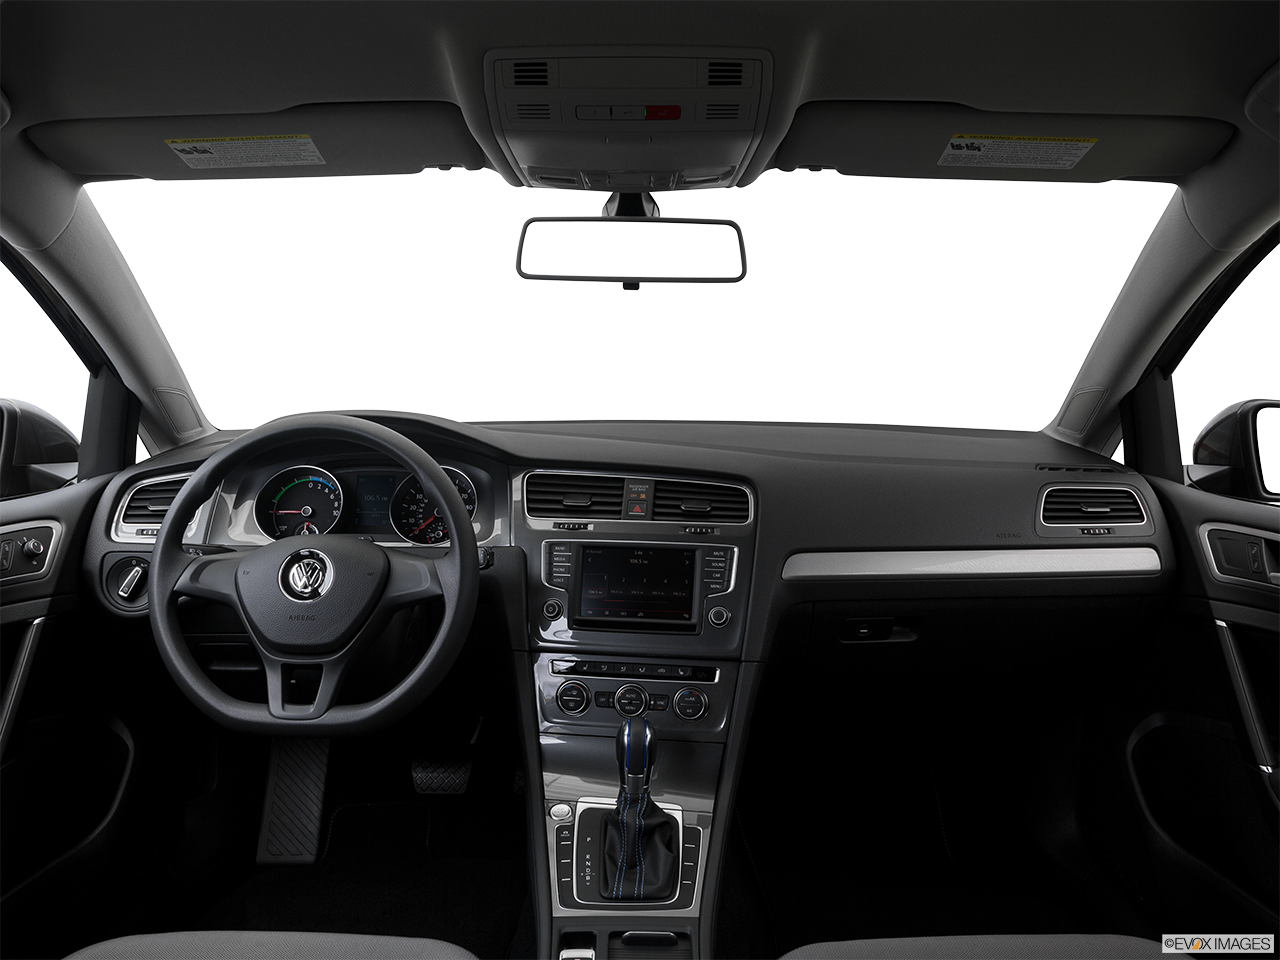 Interior View Of 2016 Volkswagen e-Golf in Los Angeles